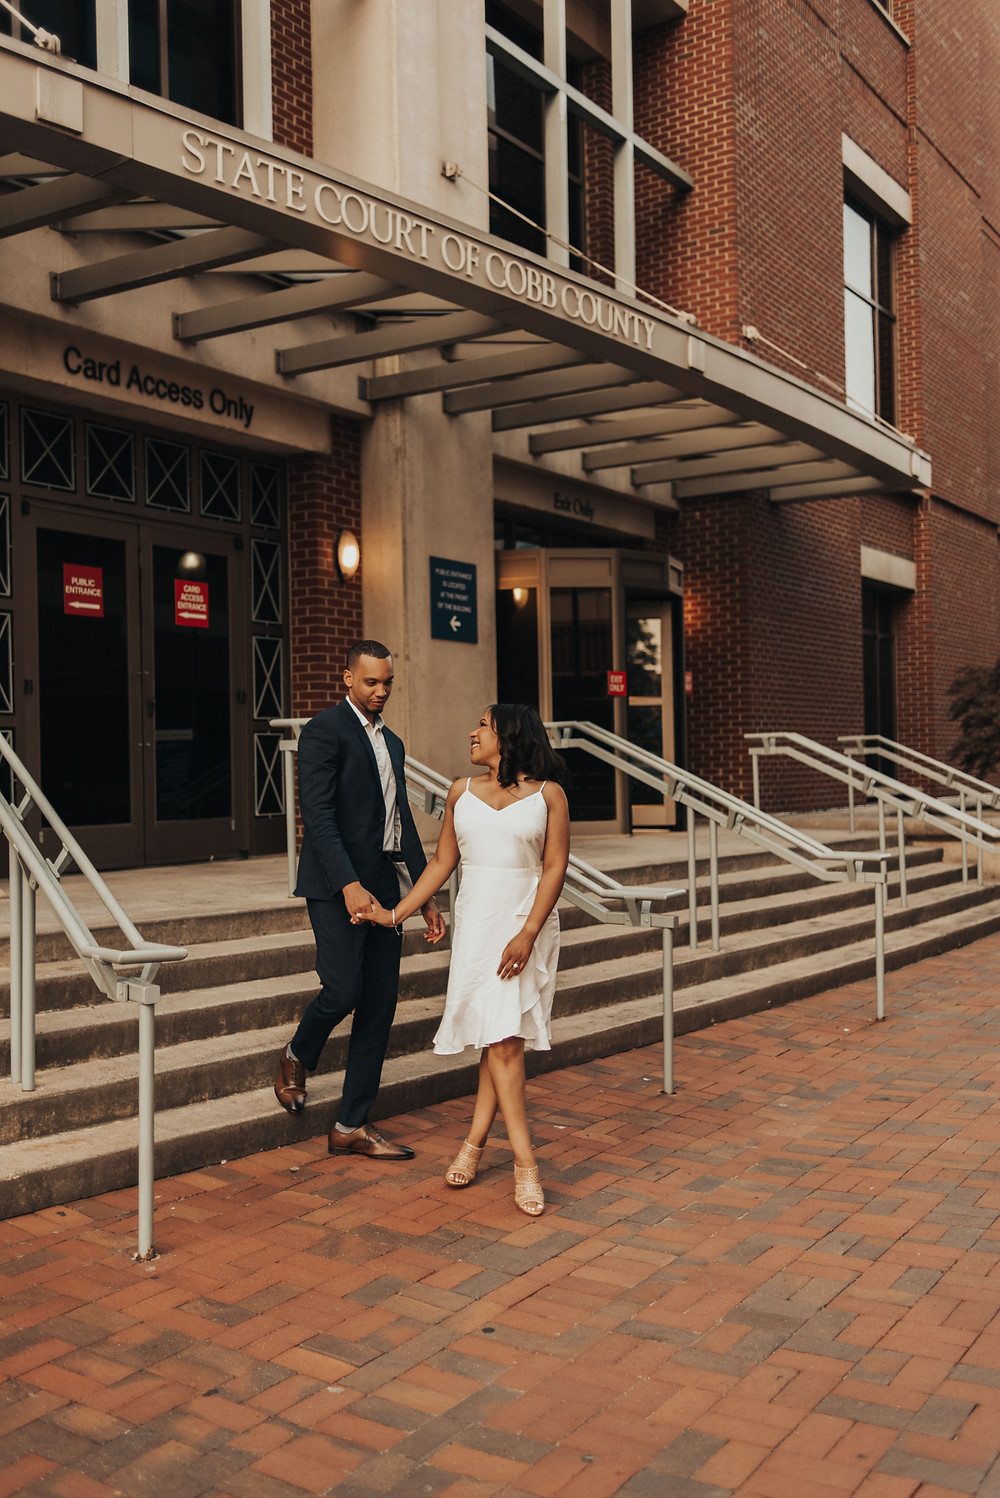 Couple's engagement session in Marietta Square, GA. State Court of Cobb County